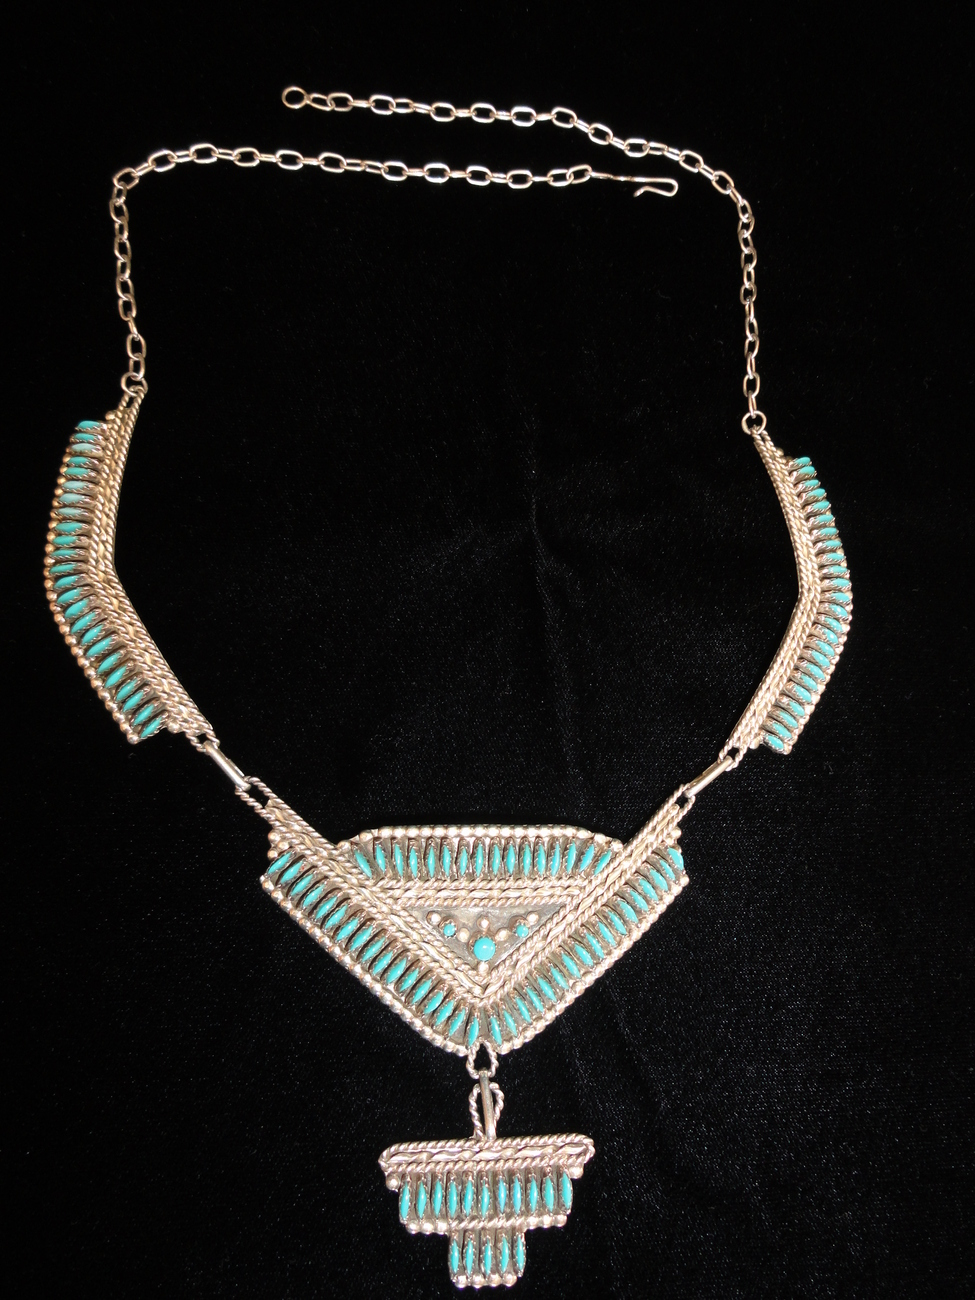 Nativeamericanzunisterlingneedlepointturquoisenecklace__5_